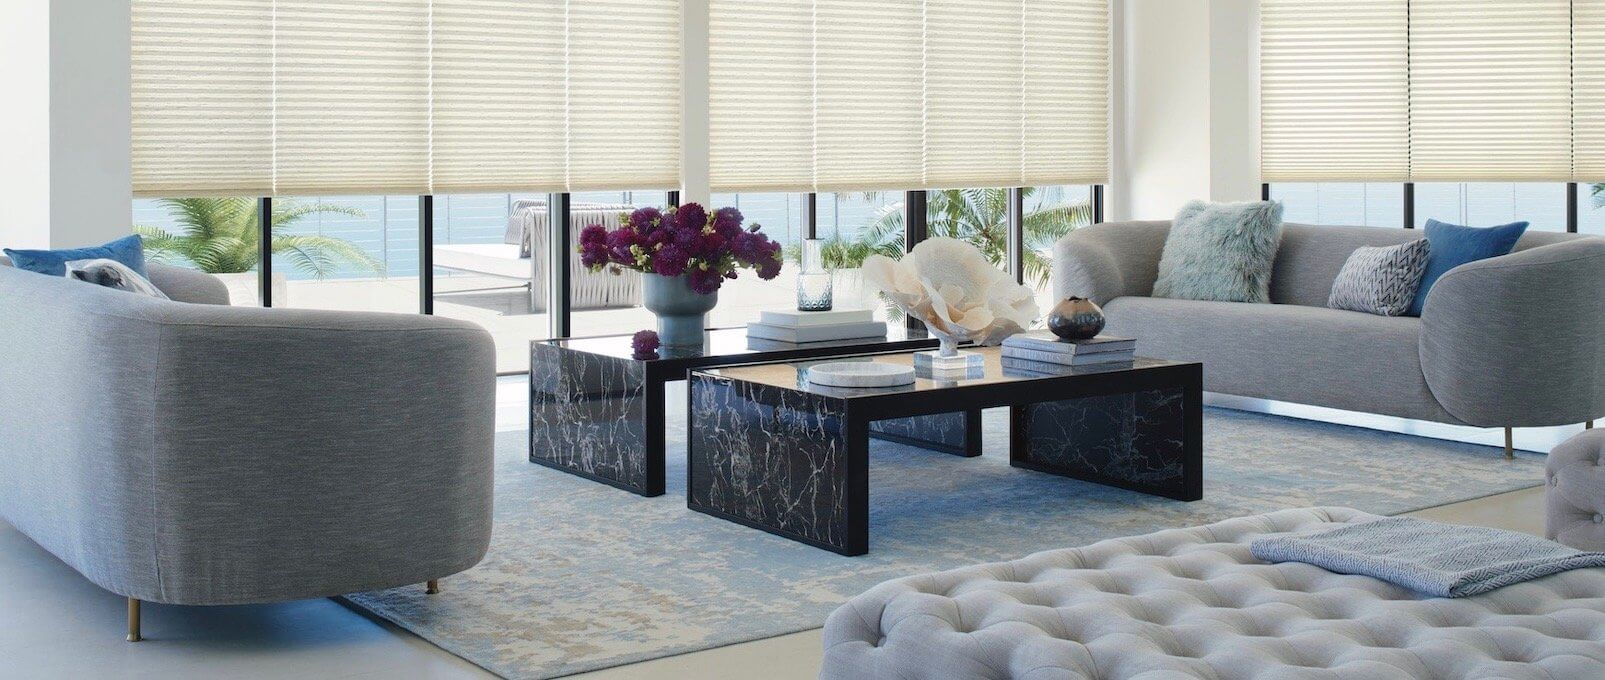 Duette PowerView Duolite - India Silk, Whisper Sheer - Living Room